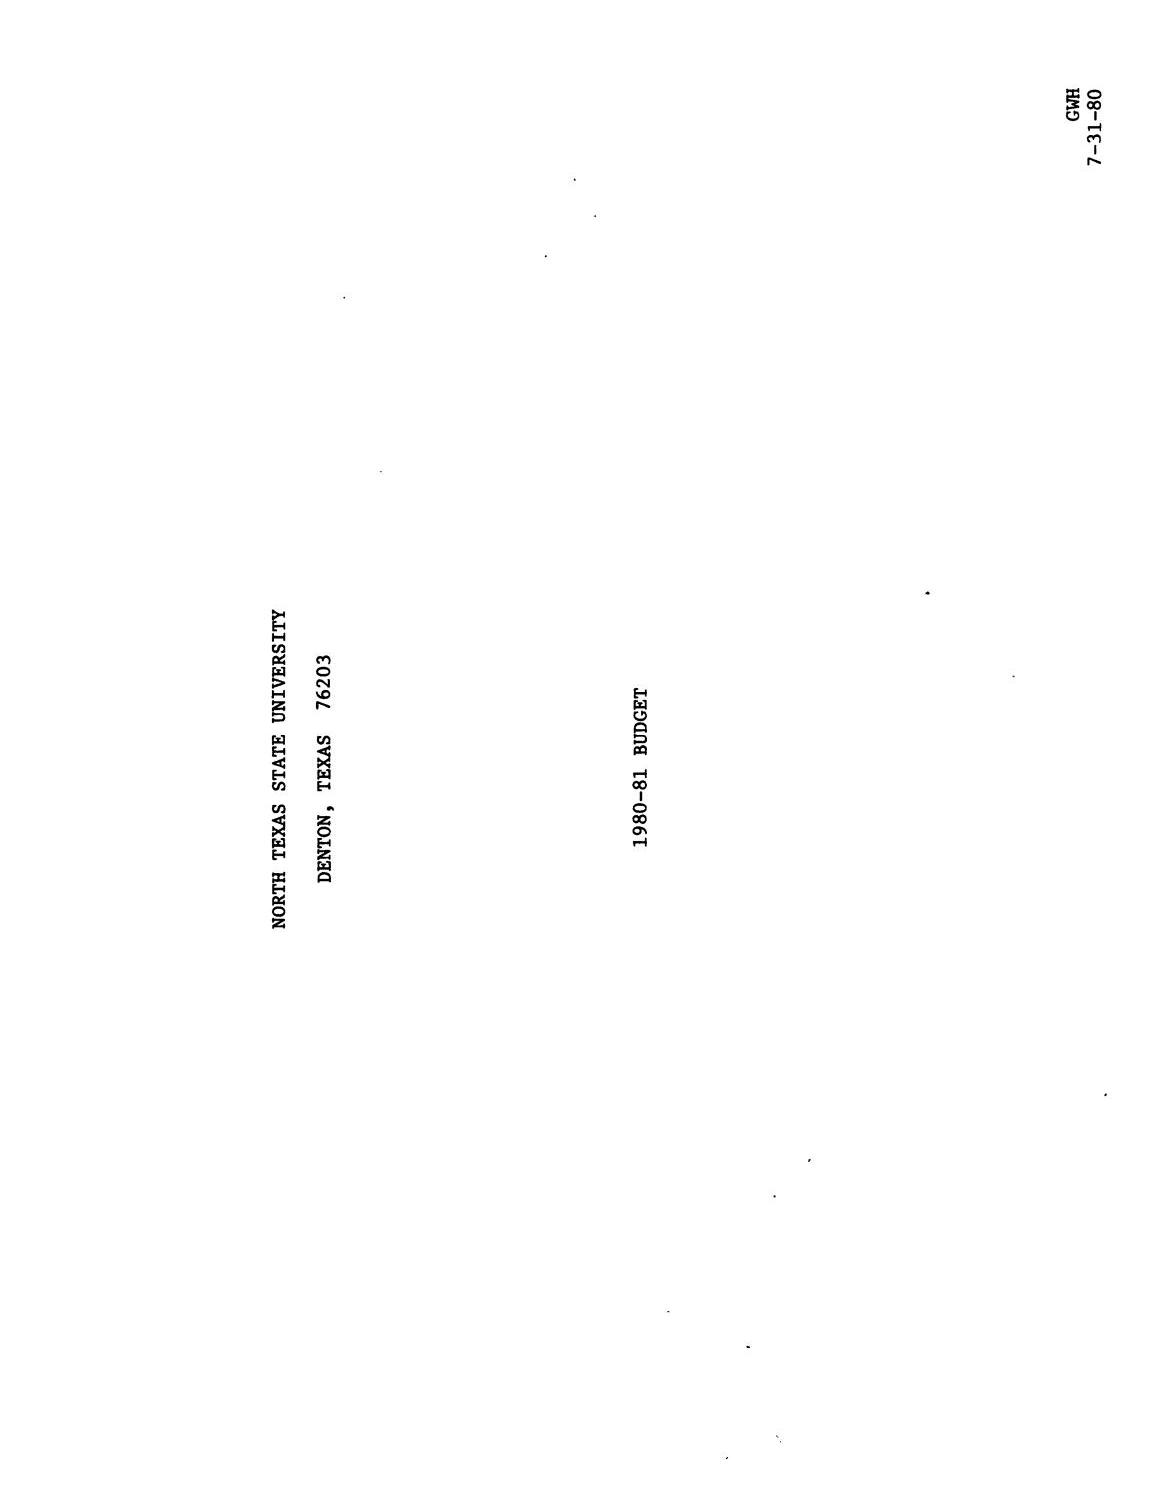 North Texas State University Budget: 1980-1981                                                                                                      Title Page